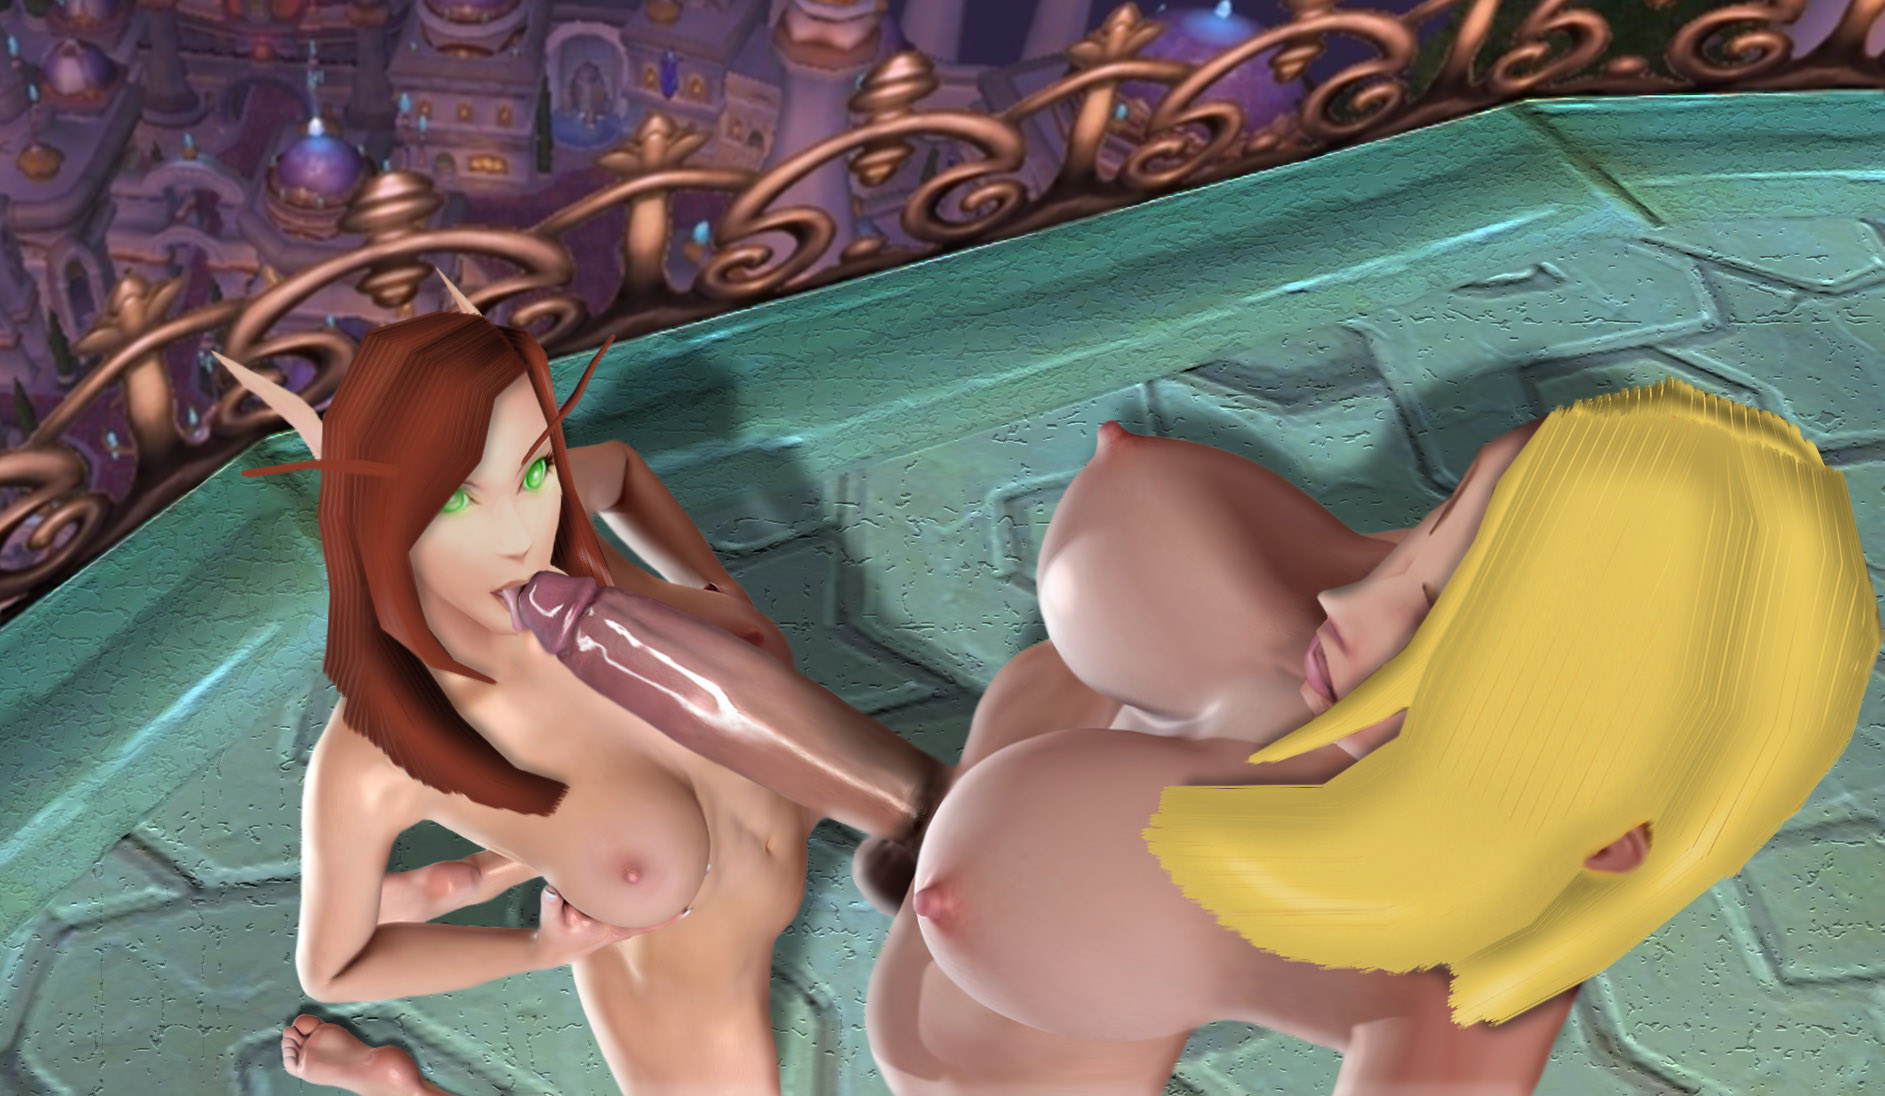 Wow pov porn futa video 3d hentai photo